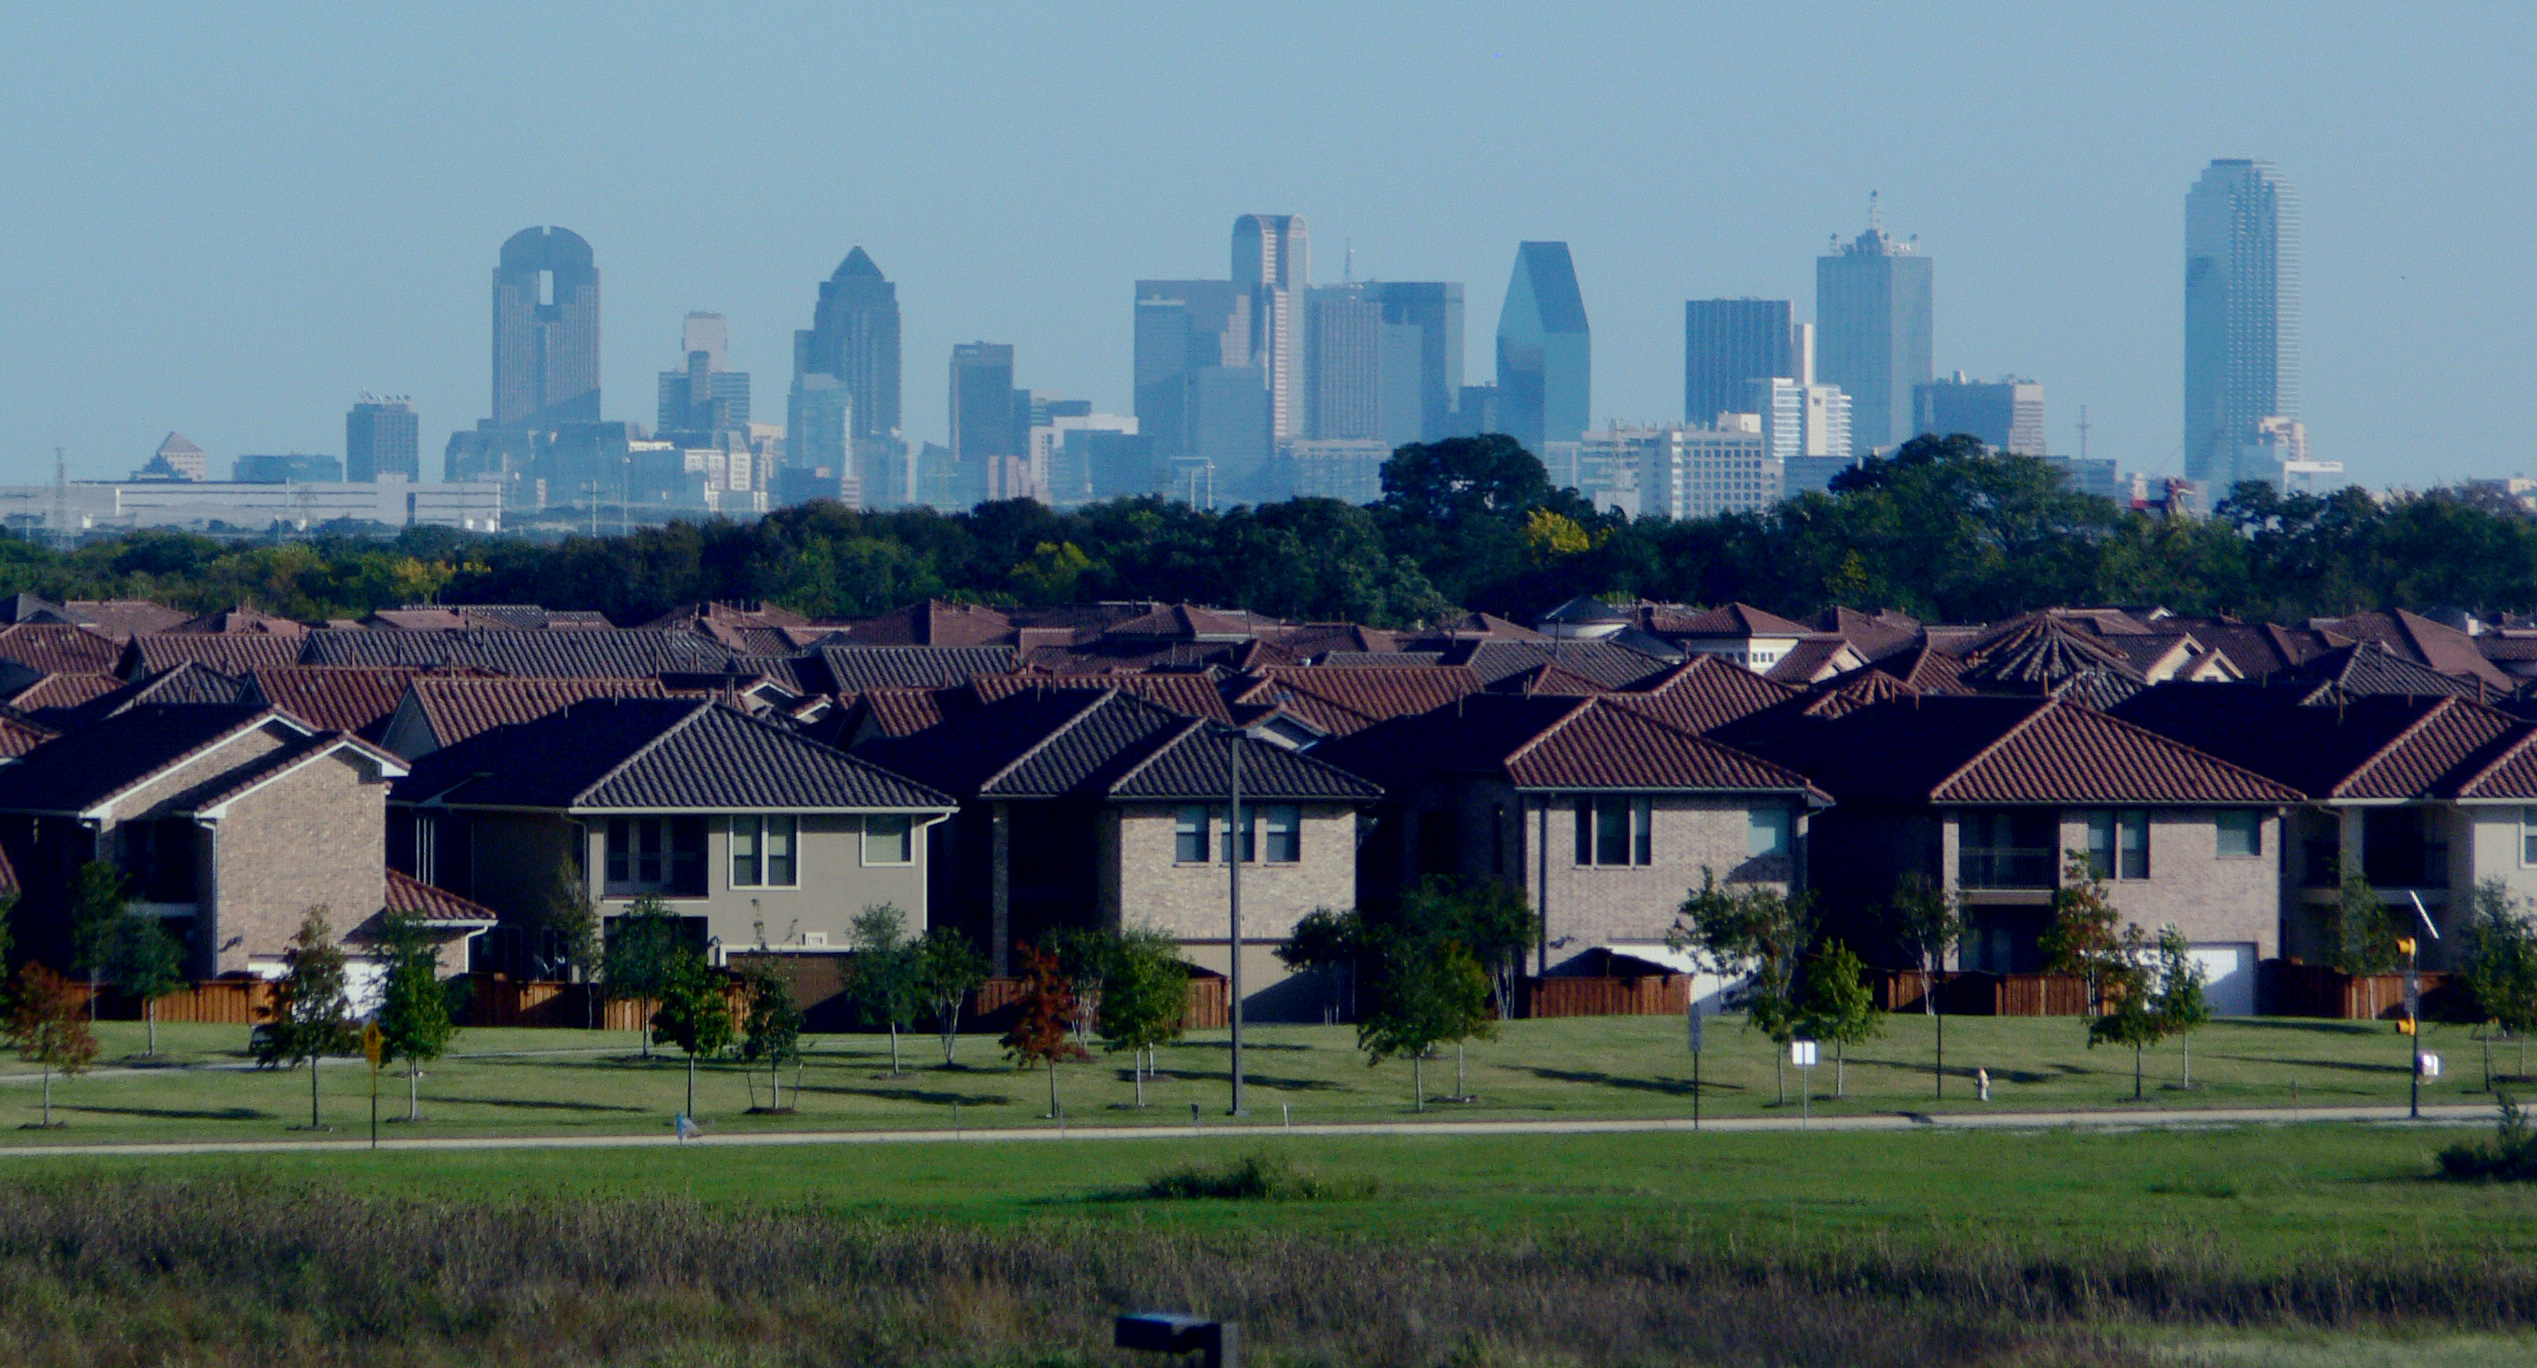 http://upload.wikimedia.org/wikipedia/commons/6/6e/Dallas_skyline_and_suburbs.jpg